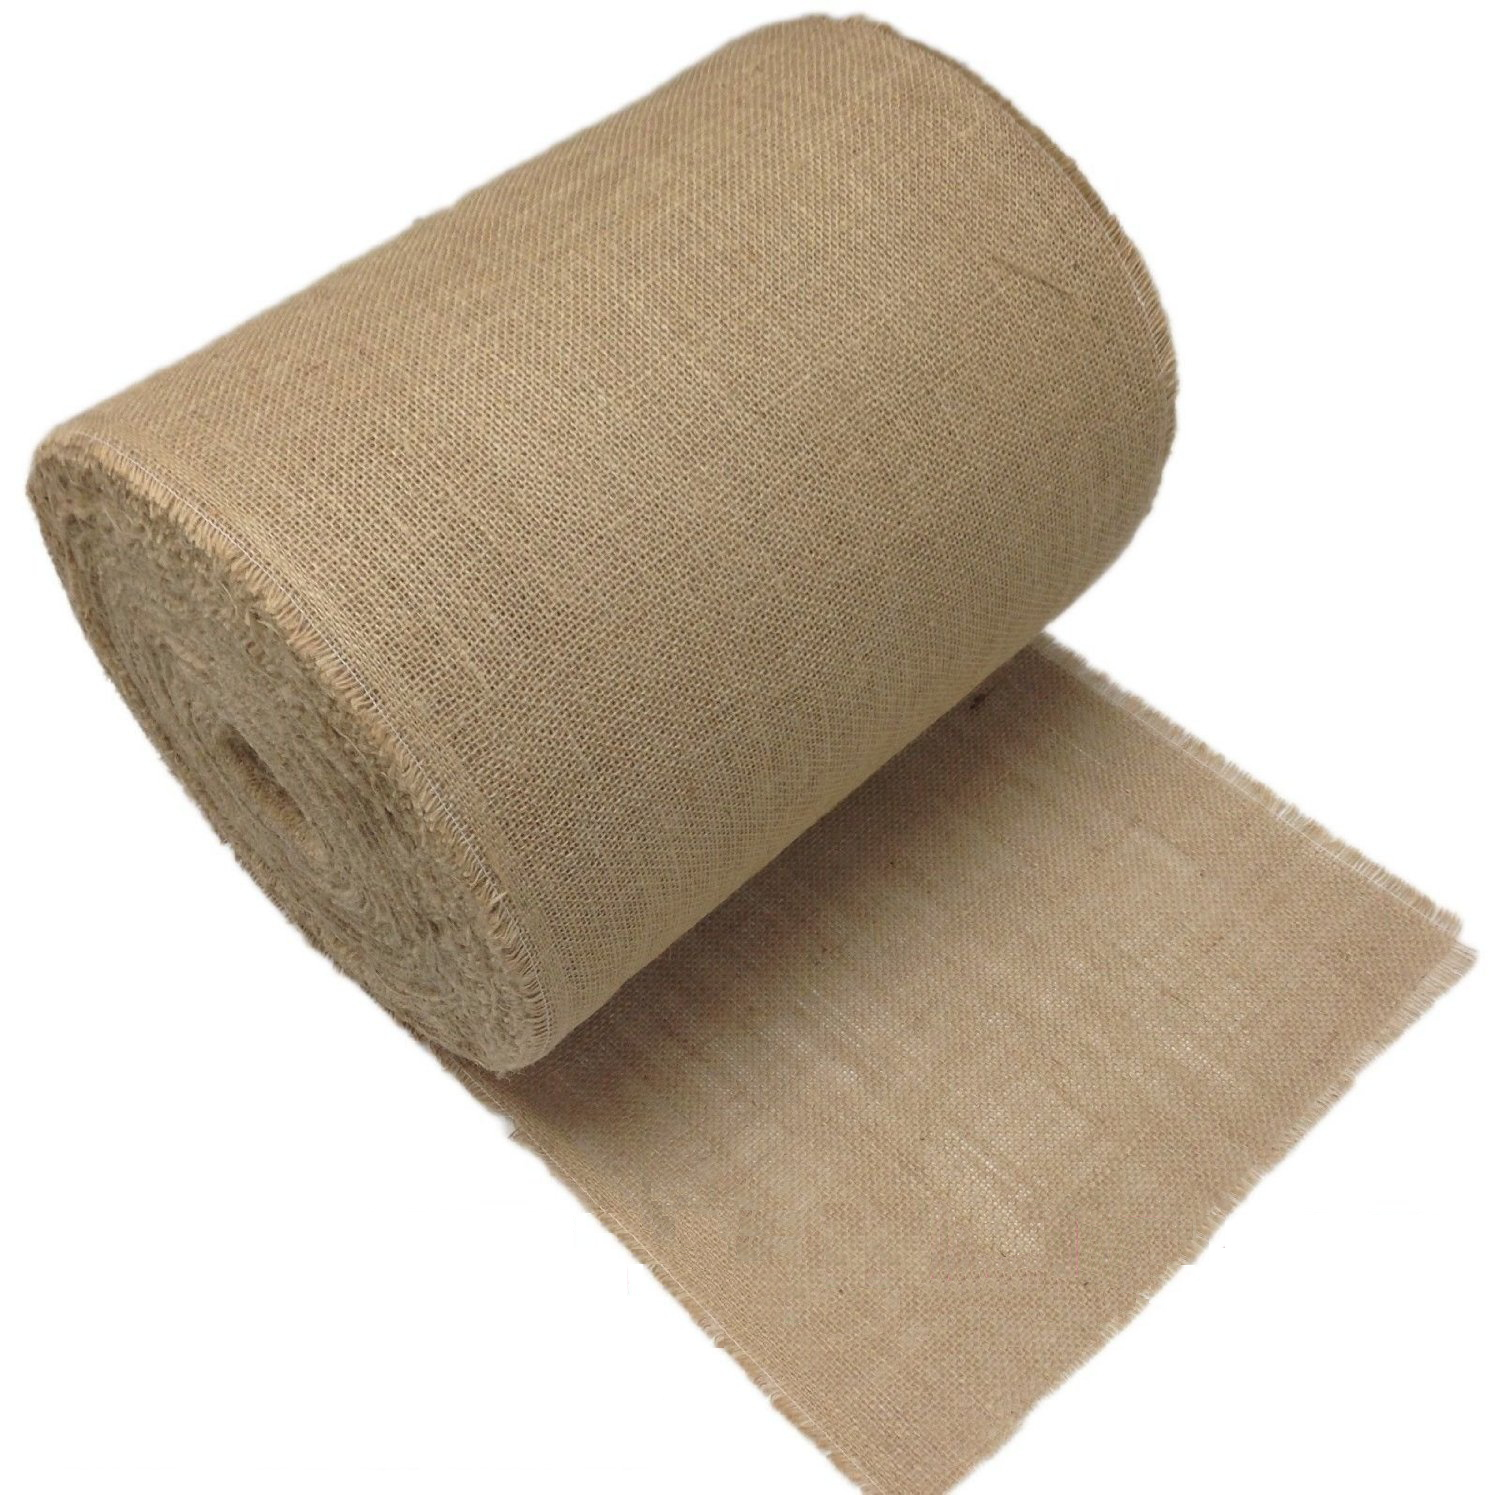 "14"" Premium Burlap Roll - 100 Yards (Frayed Edges)"